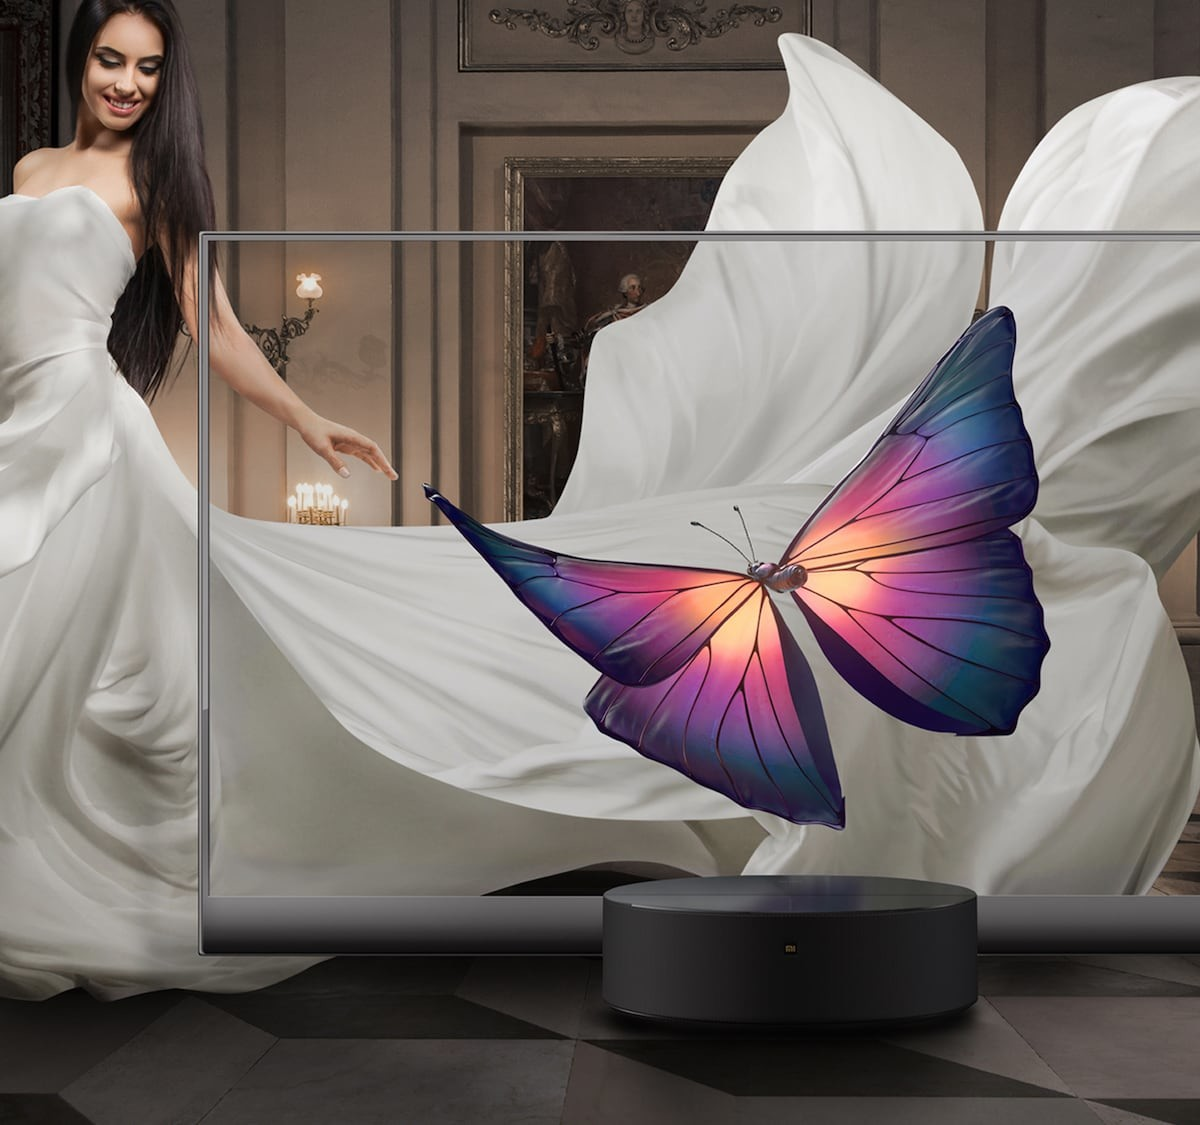 Xiaomi Mi TV LUX OLED Transparent Edition clear TV has an edge-to-edge display